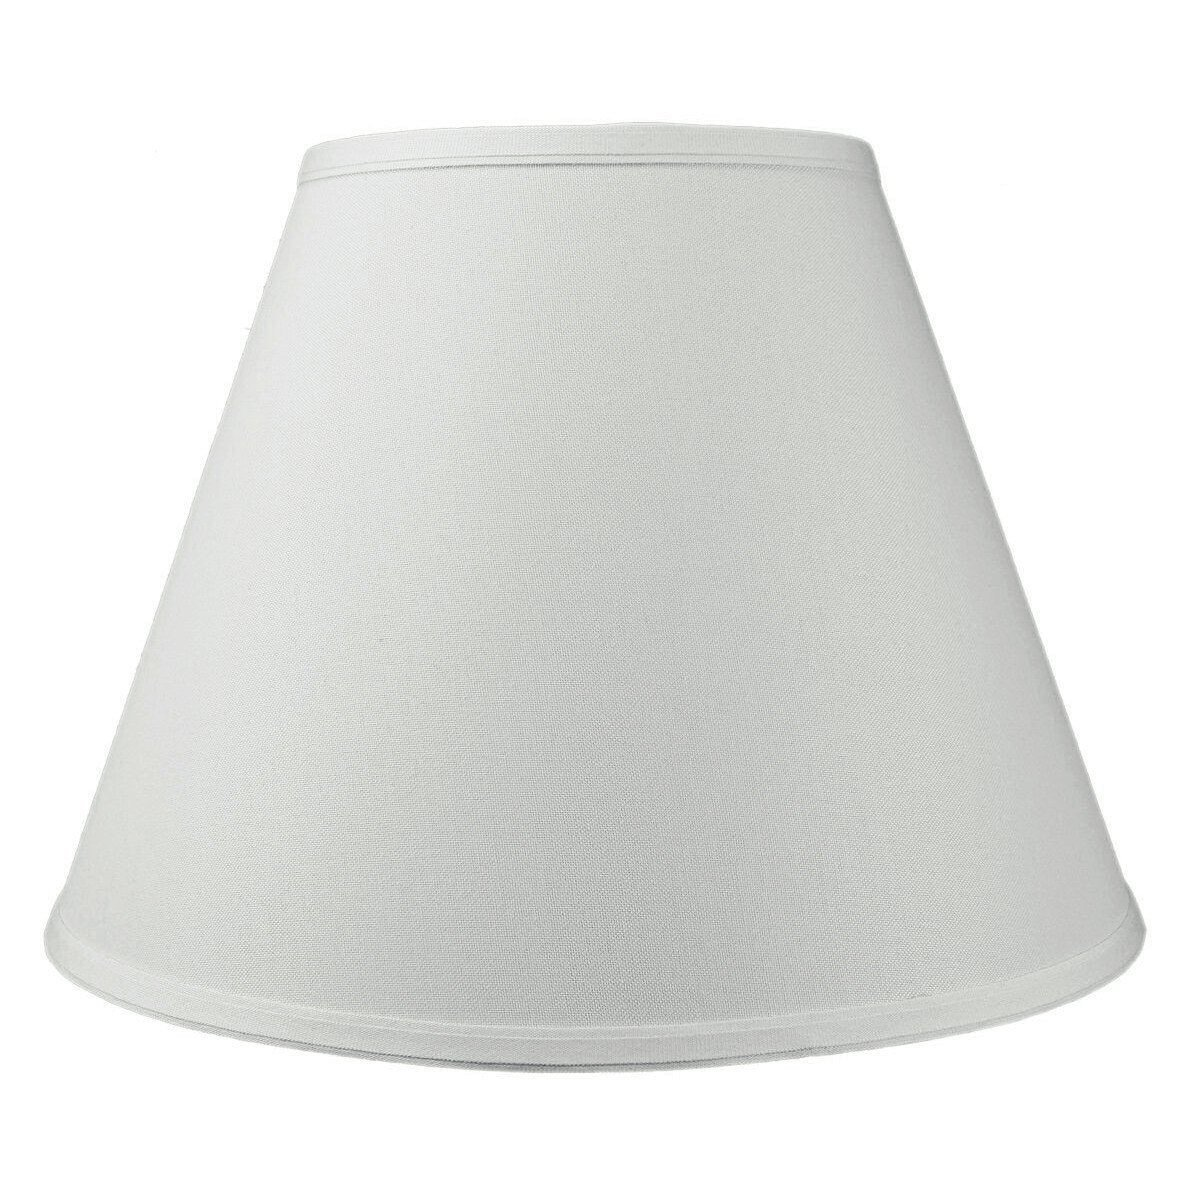 8x16x12 Hard Back Empire Lampshade White with Brass Spider fitter By Home Concept - Perfect for table lamps and some desk lamps -Medium, White